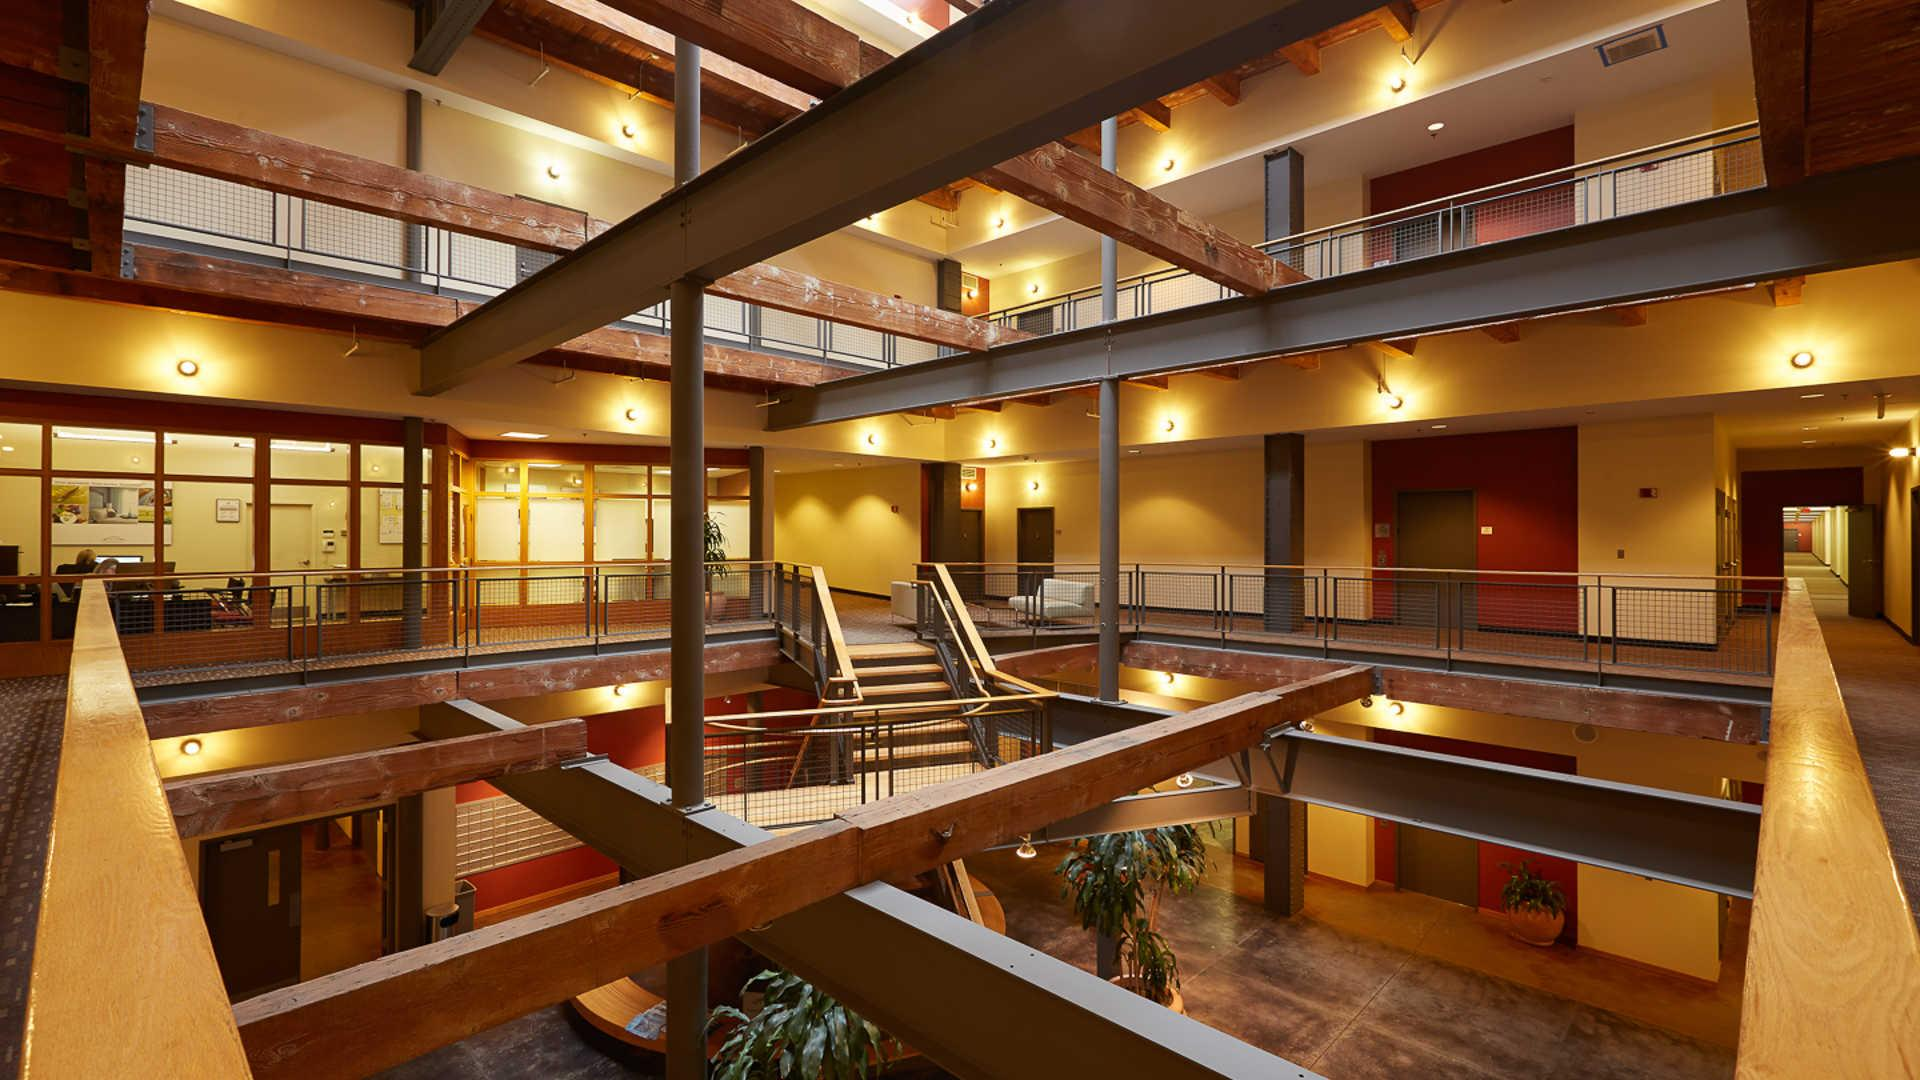 The Lofts at Kendall Square Apartments photo #1